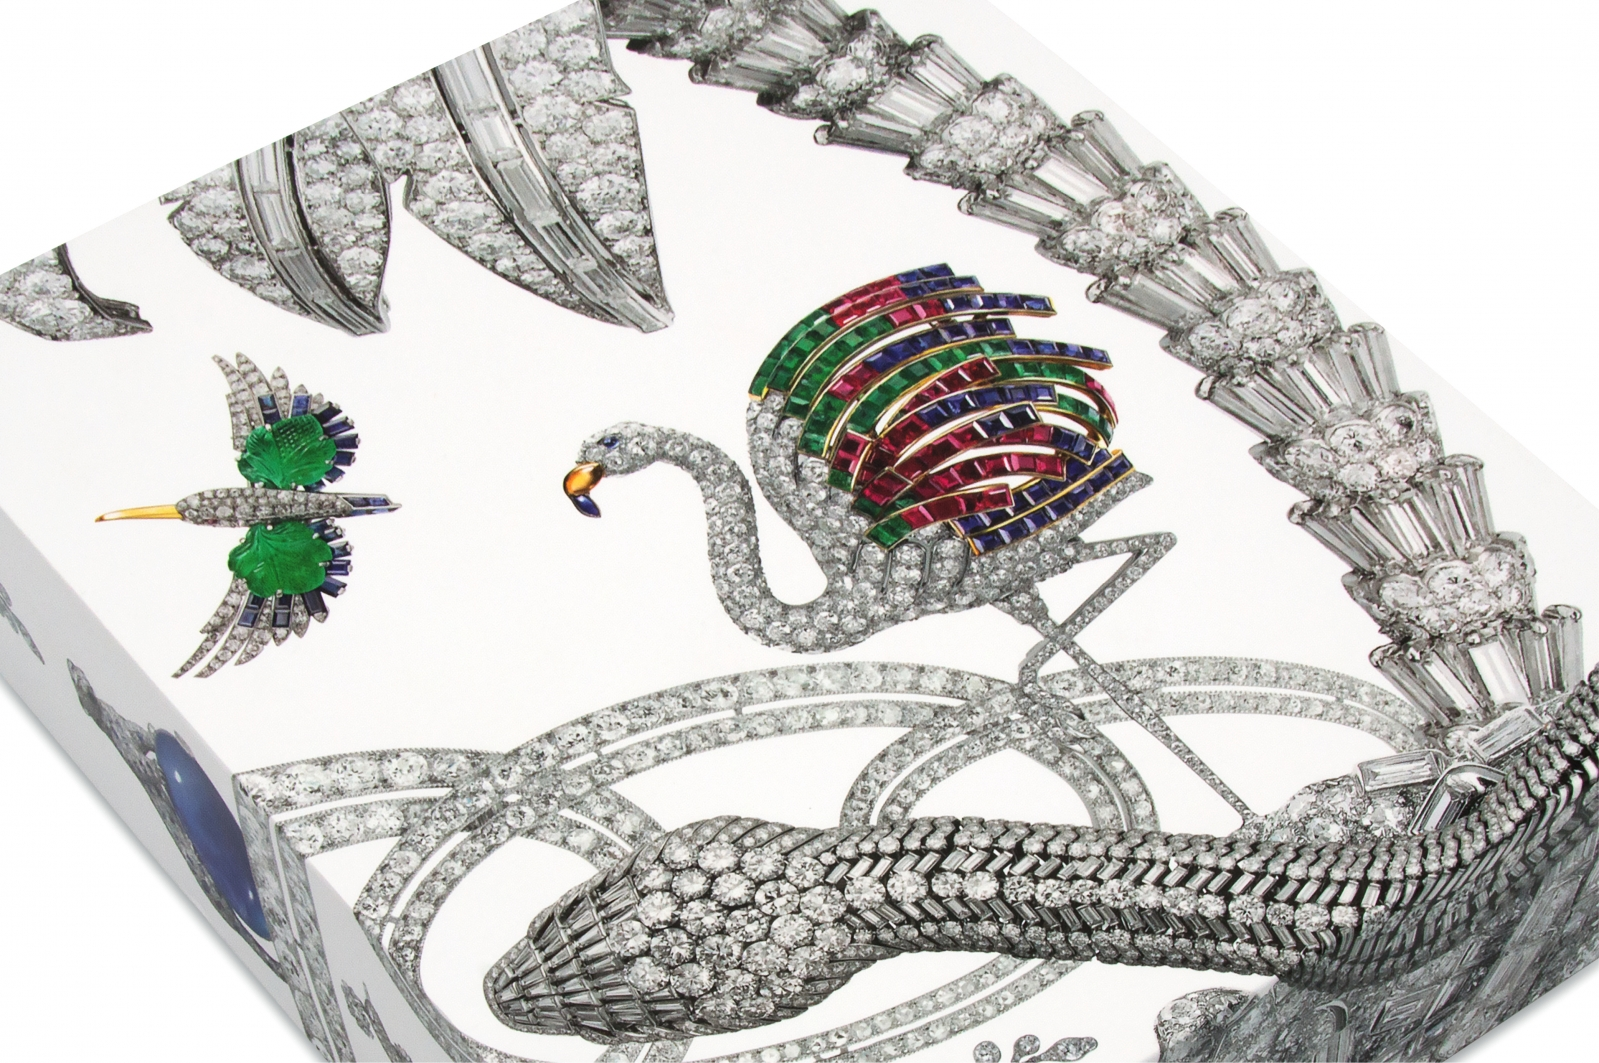 La Collection Cartier Joaillerie Volumes 1 et 2